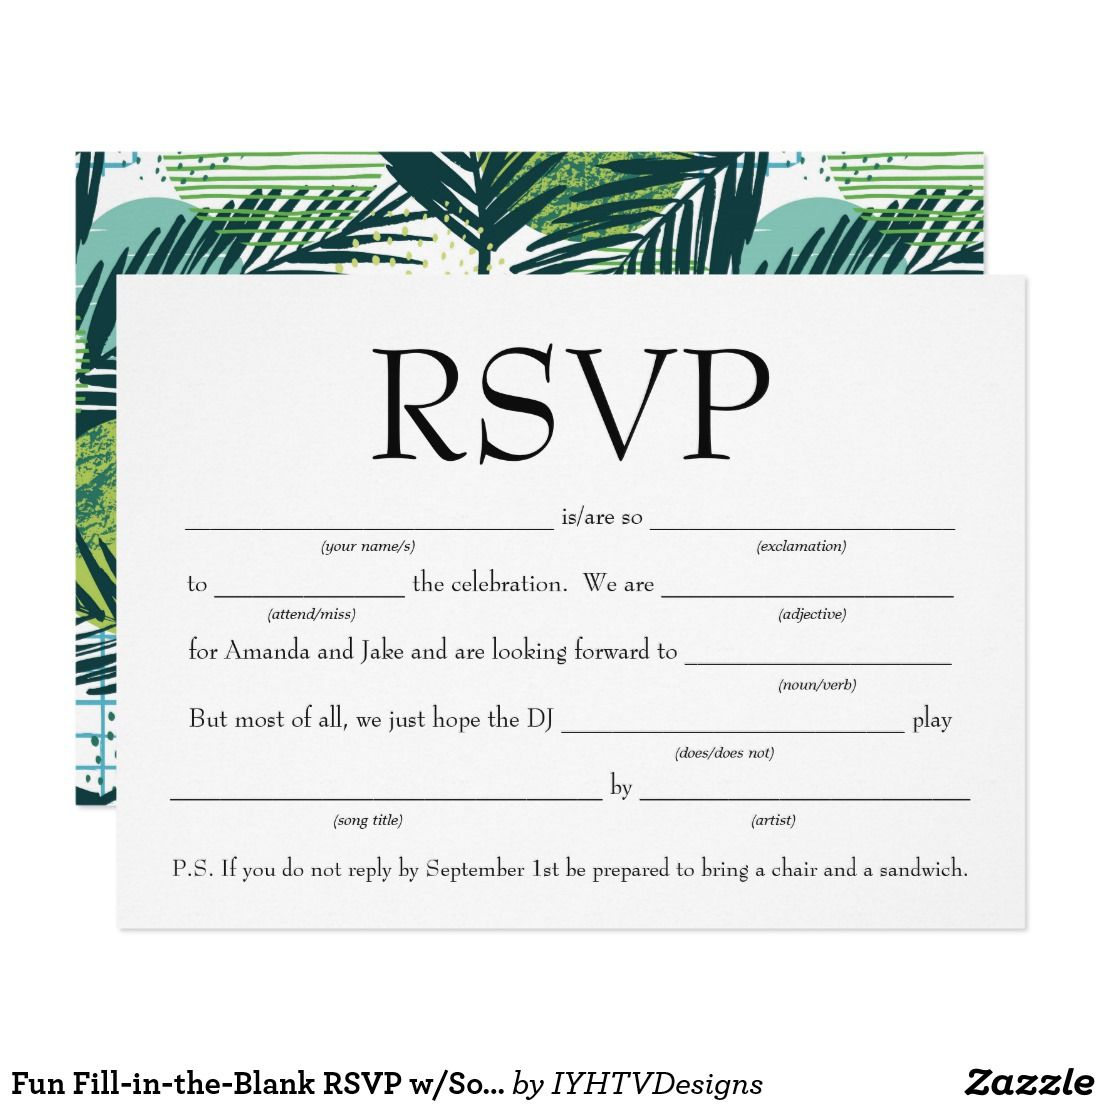 Fun FillintheBlank RSVP w/Song Request Invitation